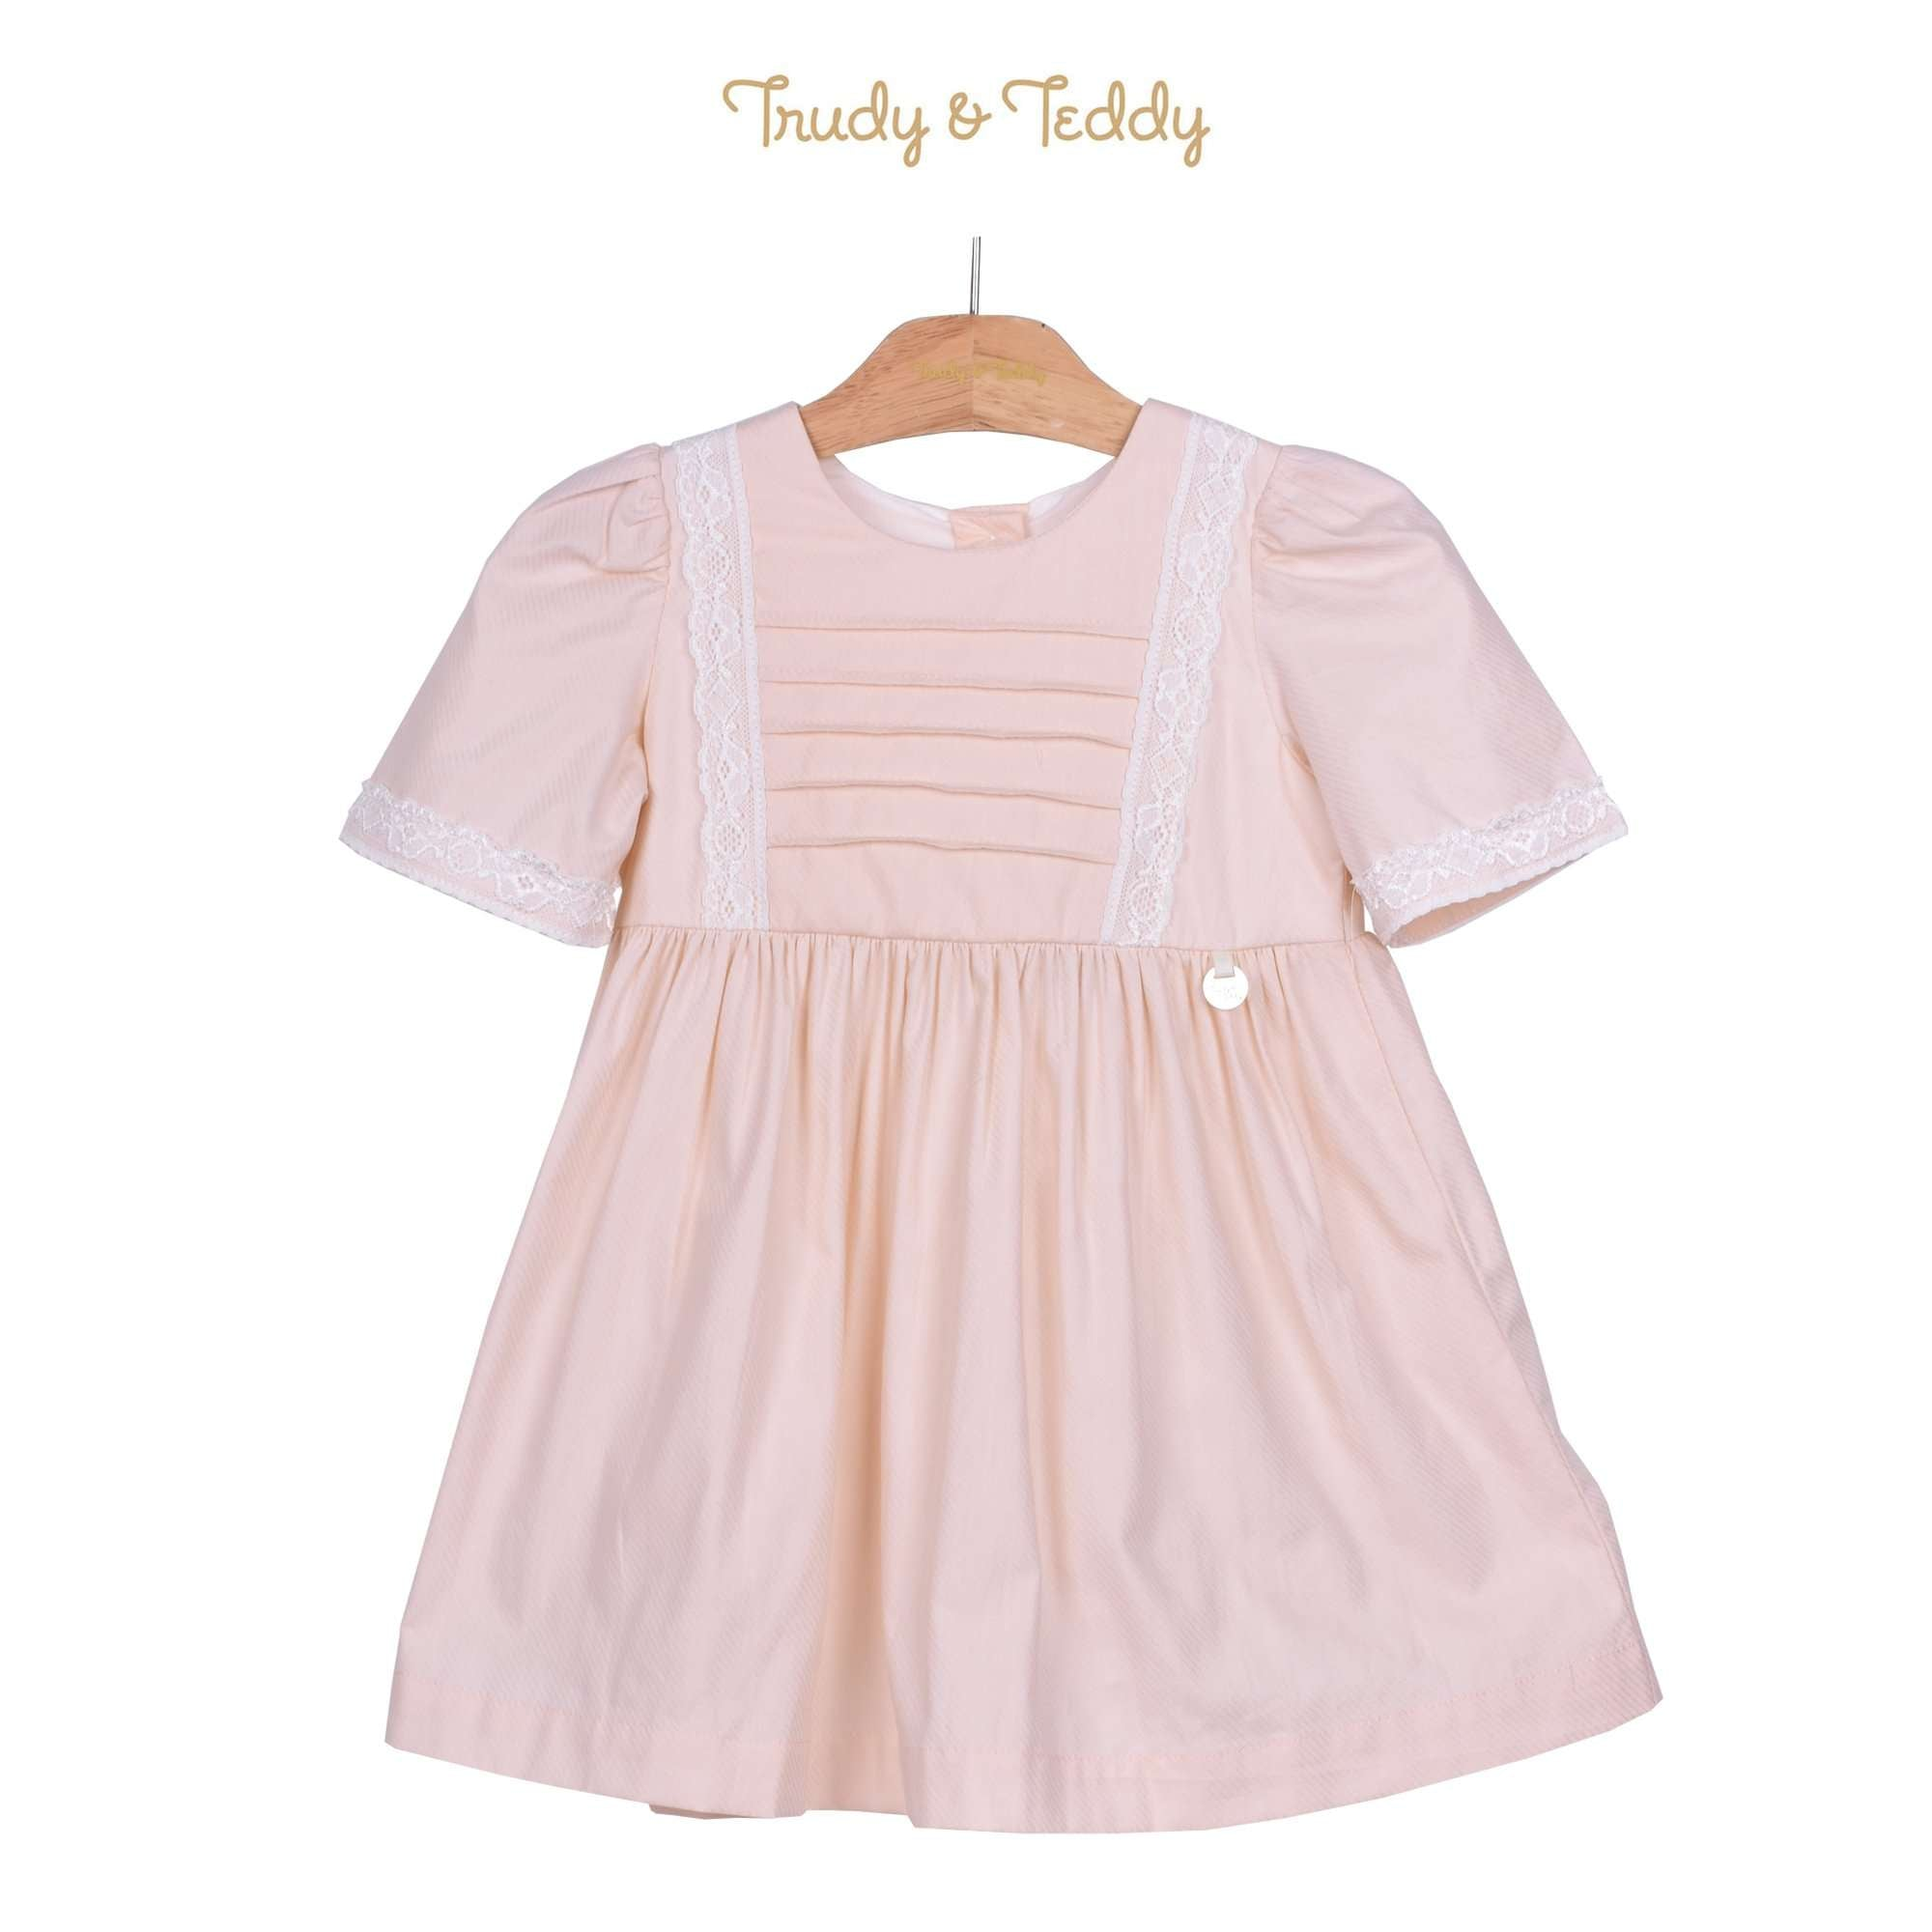 Trudy & Teddy Toddler Girl Short Sleeve Dress - Light Peach 815140-311 : Buy Trudy & Teddy online at CMG.MY